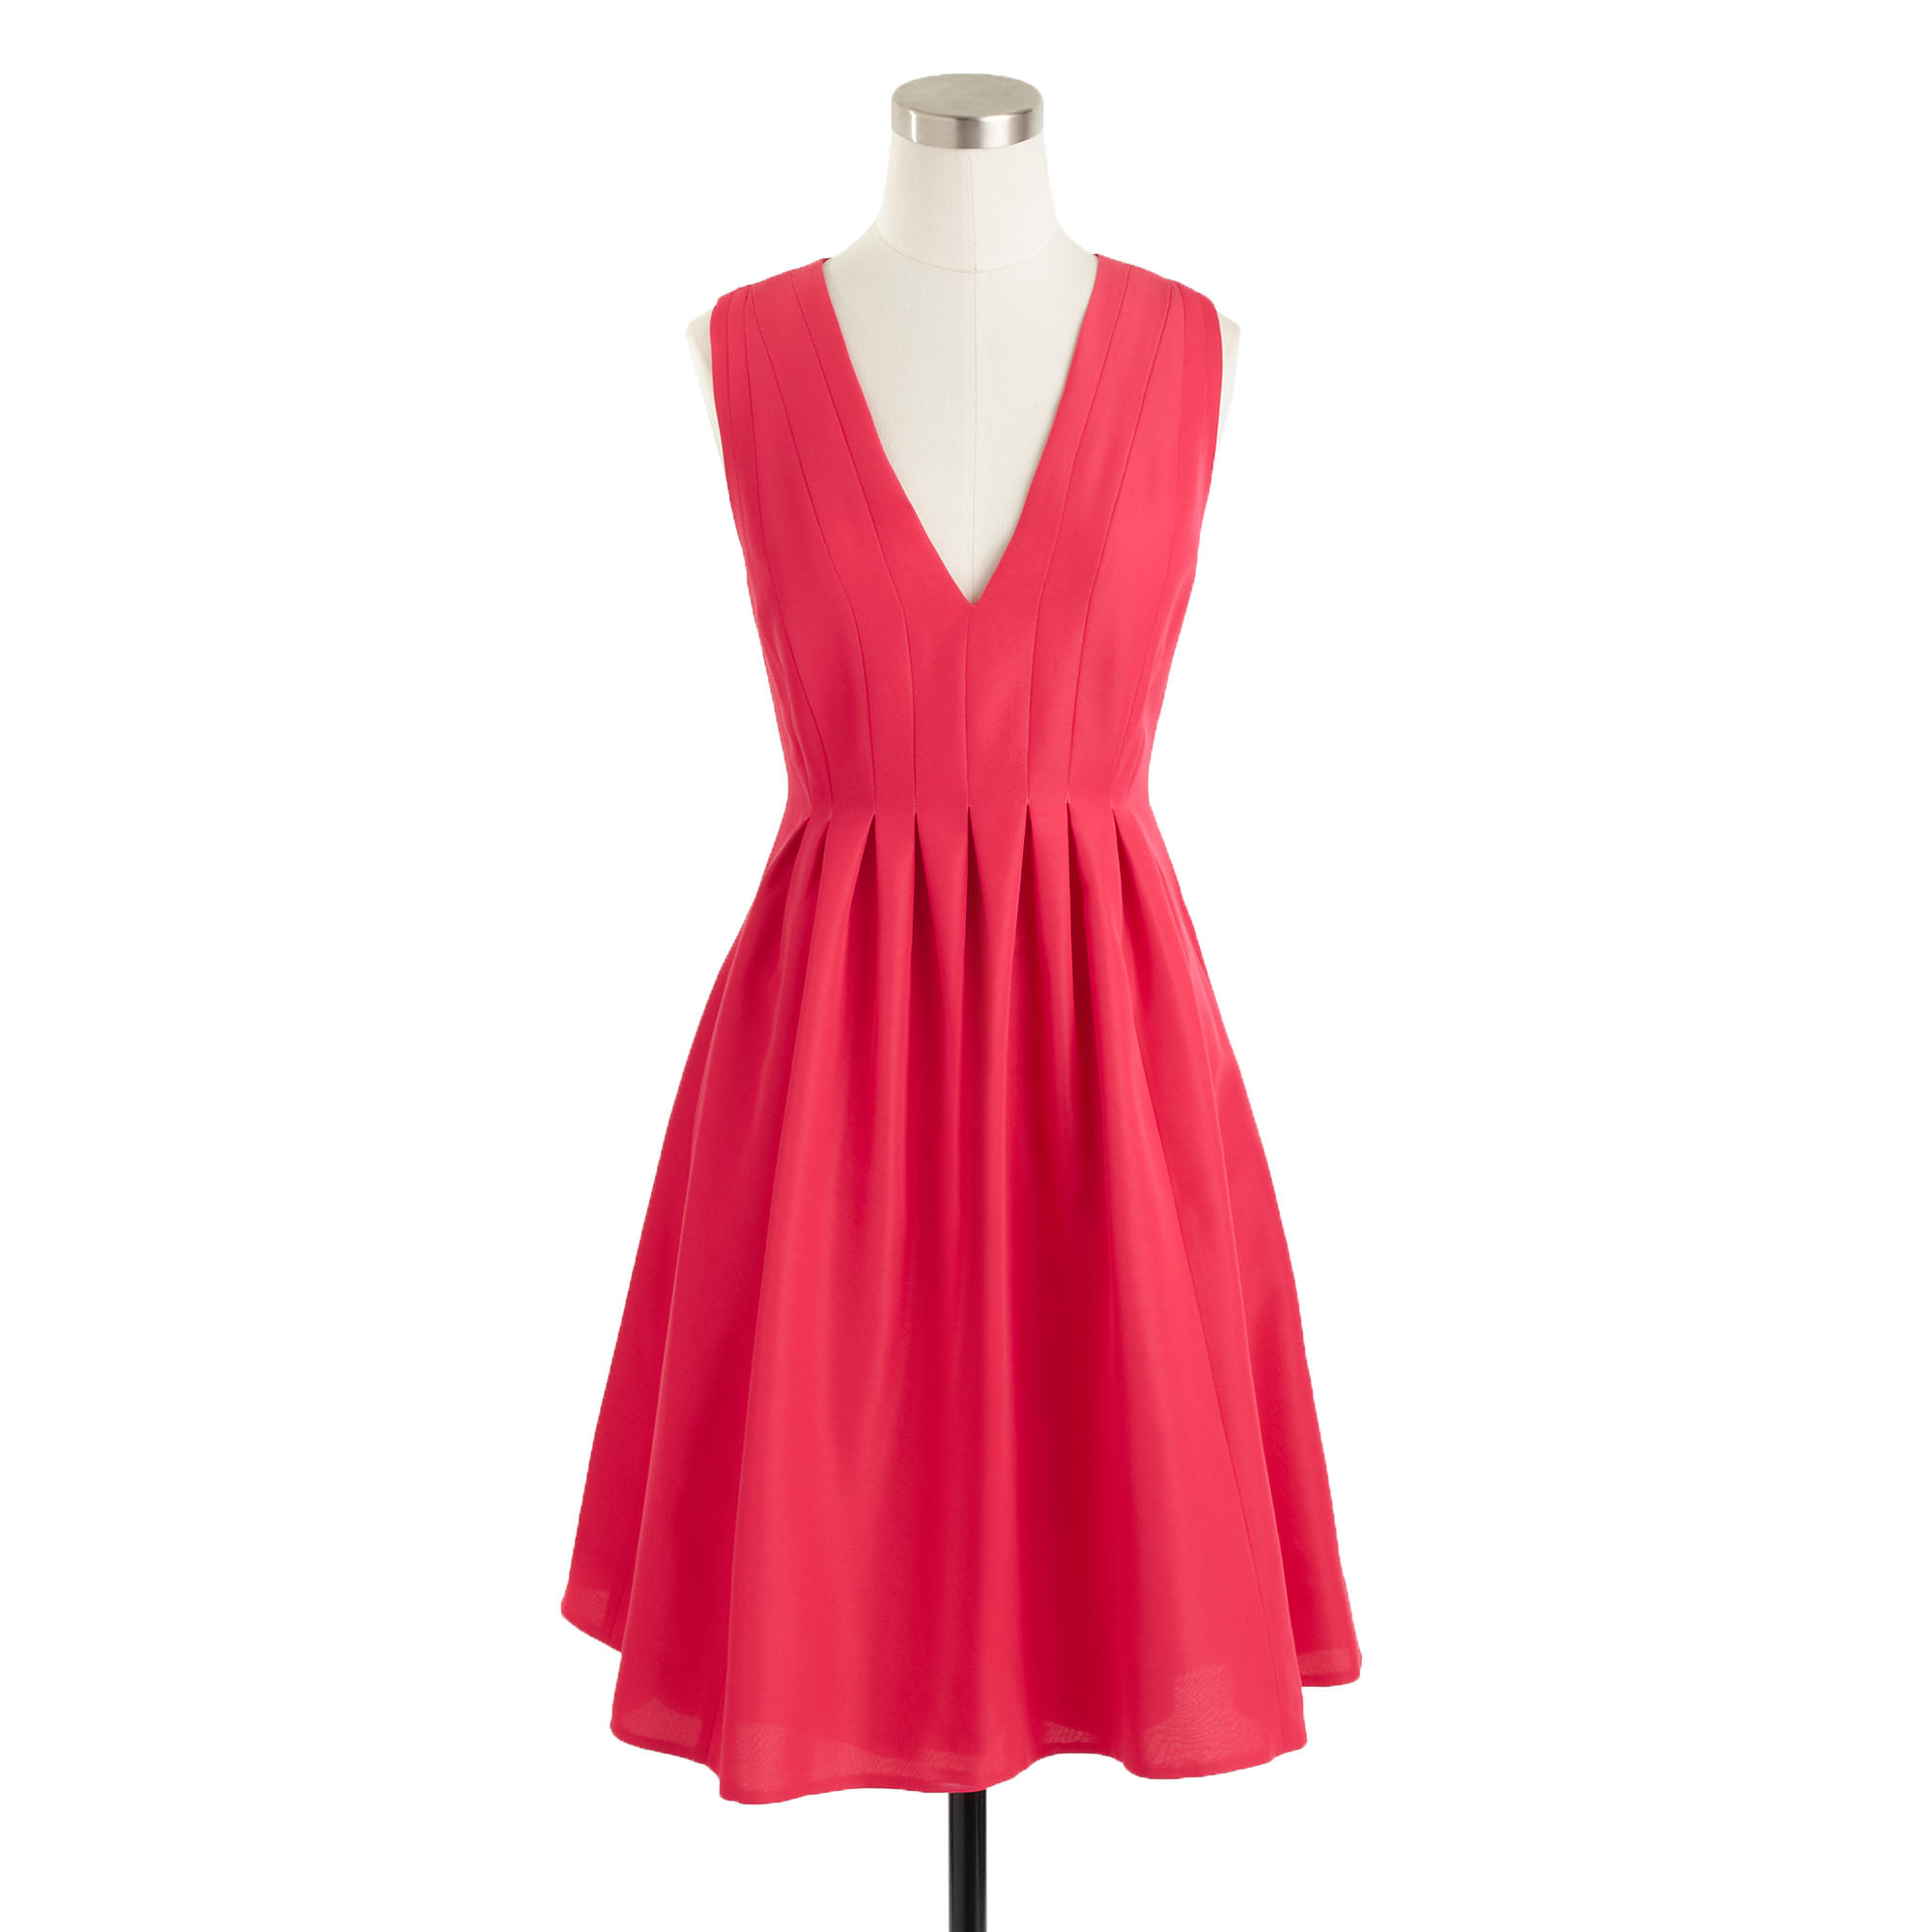 Sophie Dress: J.crew Sophie Dress In Classic Faille In Pink